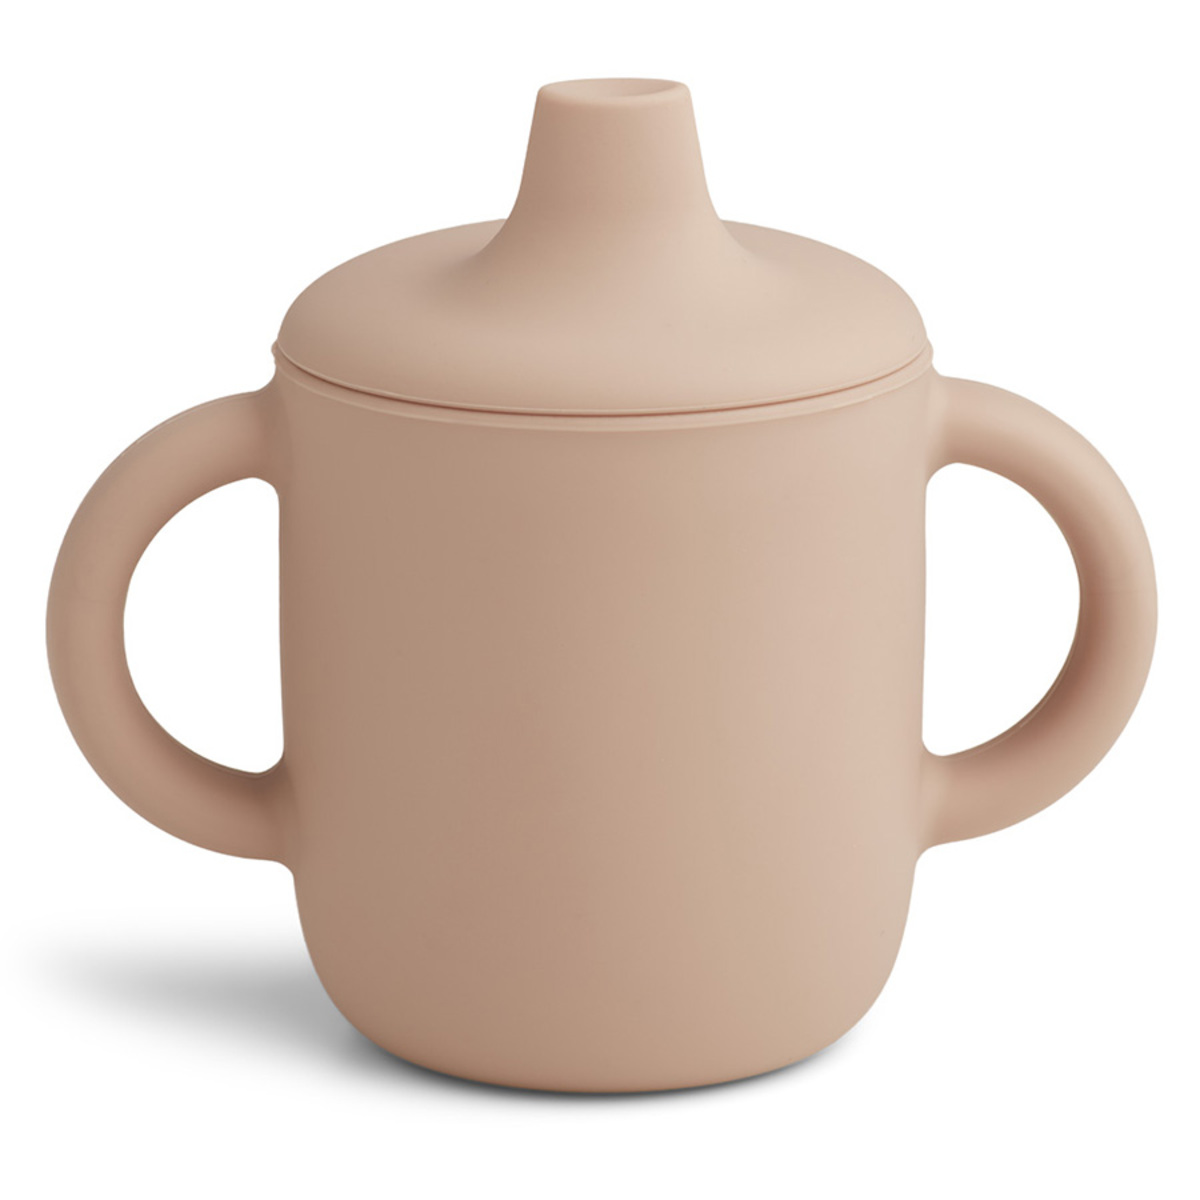 Tasse & Verre Tasse d'Apprentissage Neil Rose - 150 ml Tasse d'Apprentissage Neil Rose - 150 ml